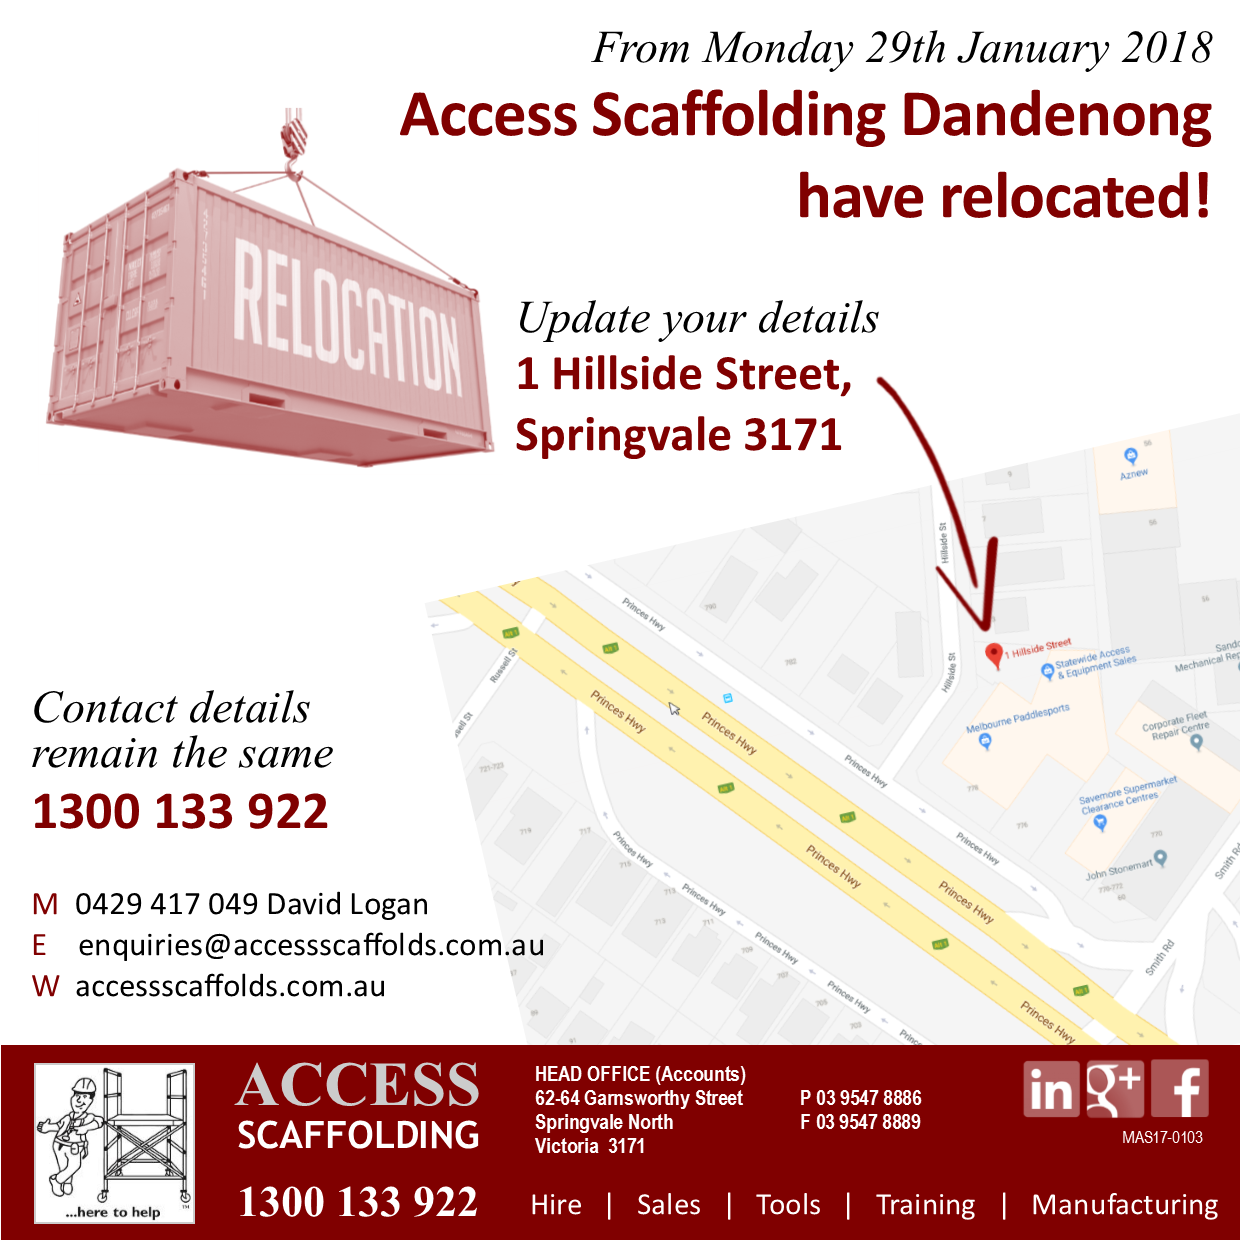 Dandenong Relocation